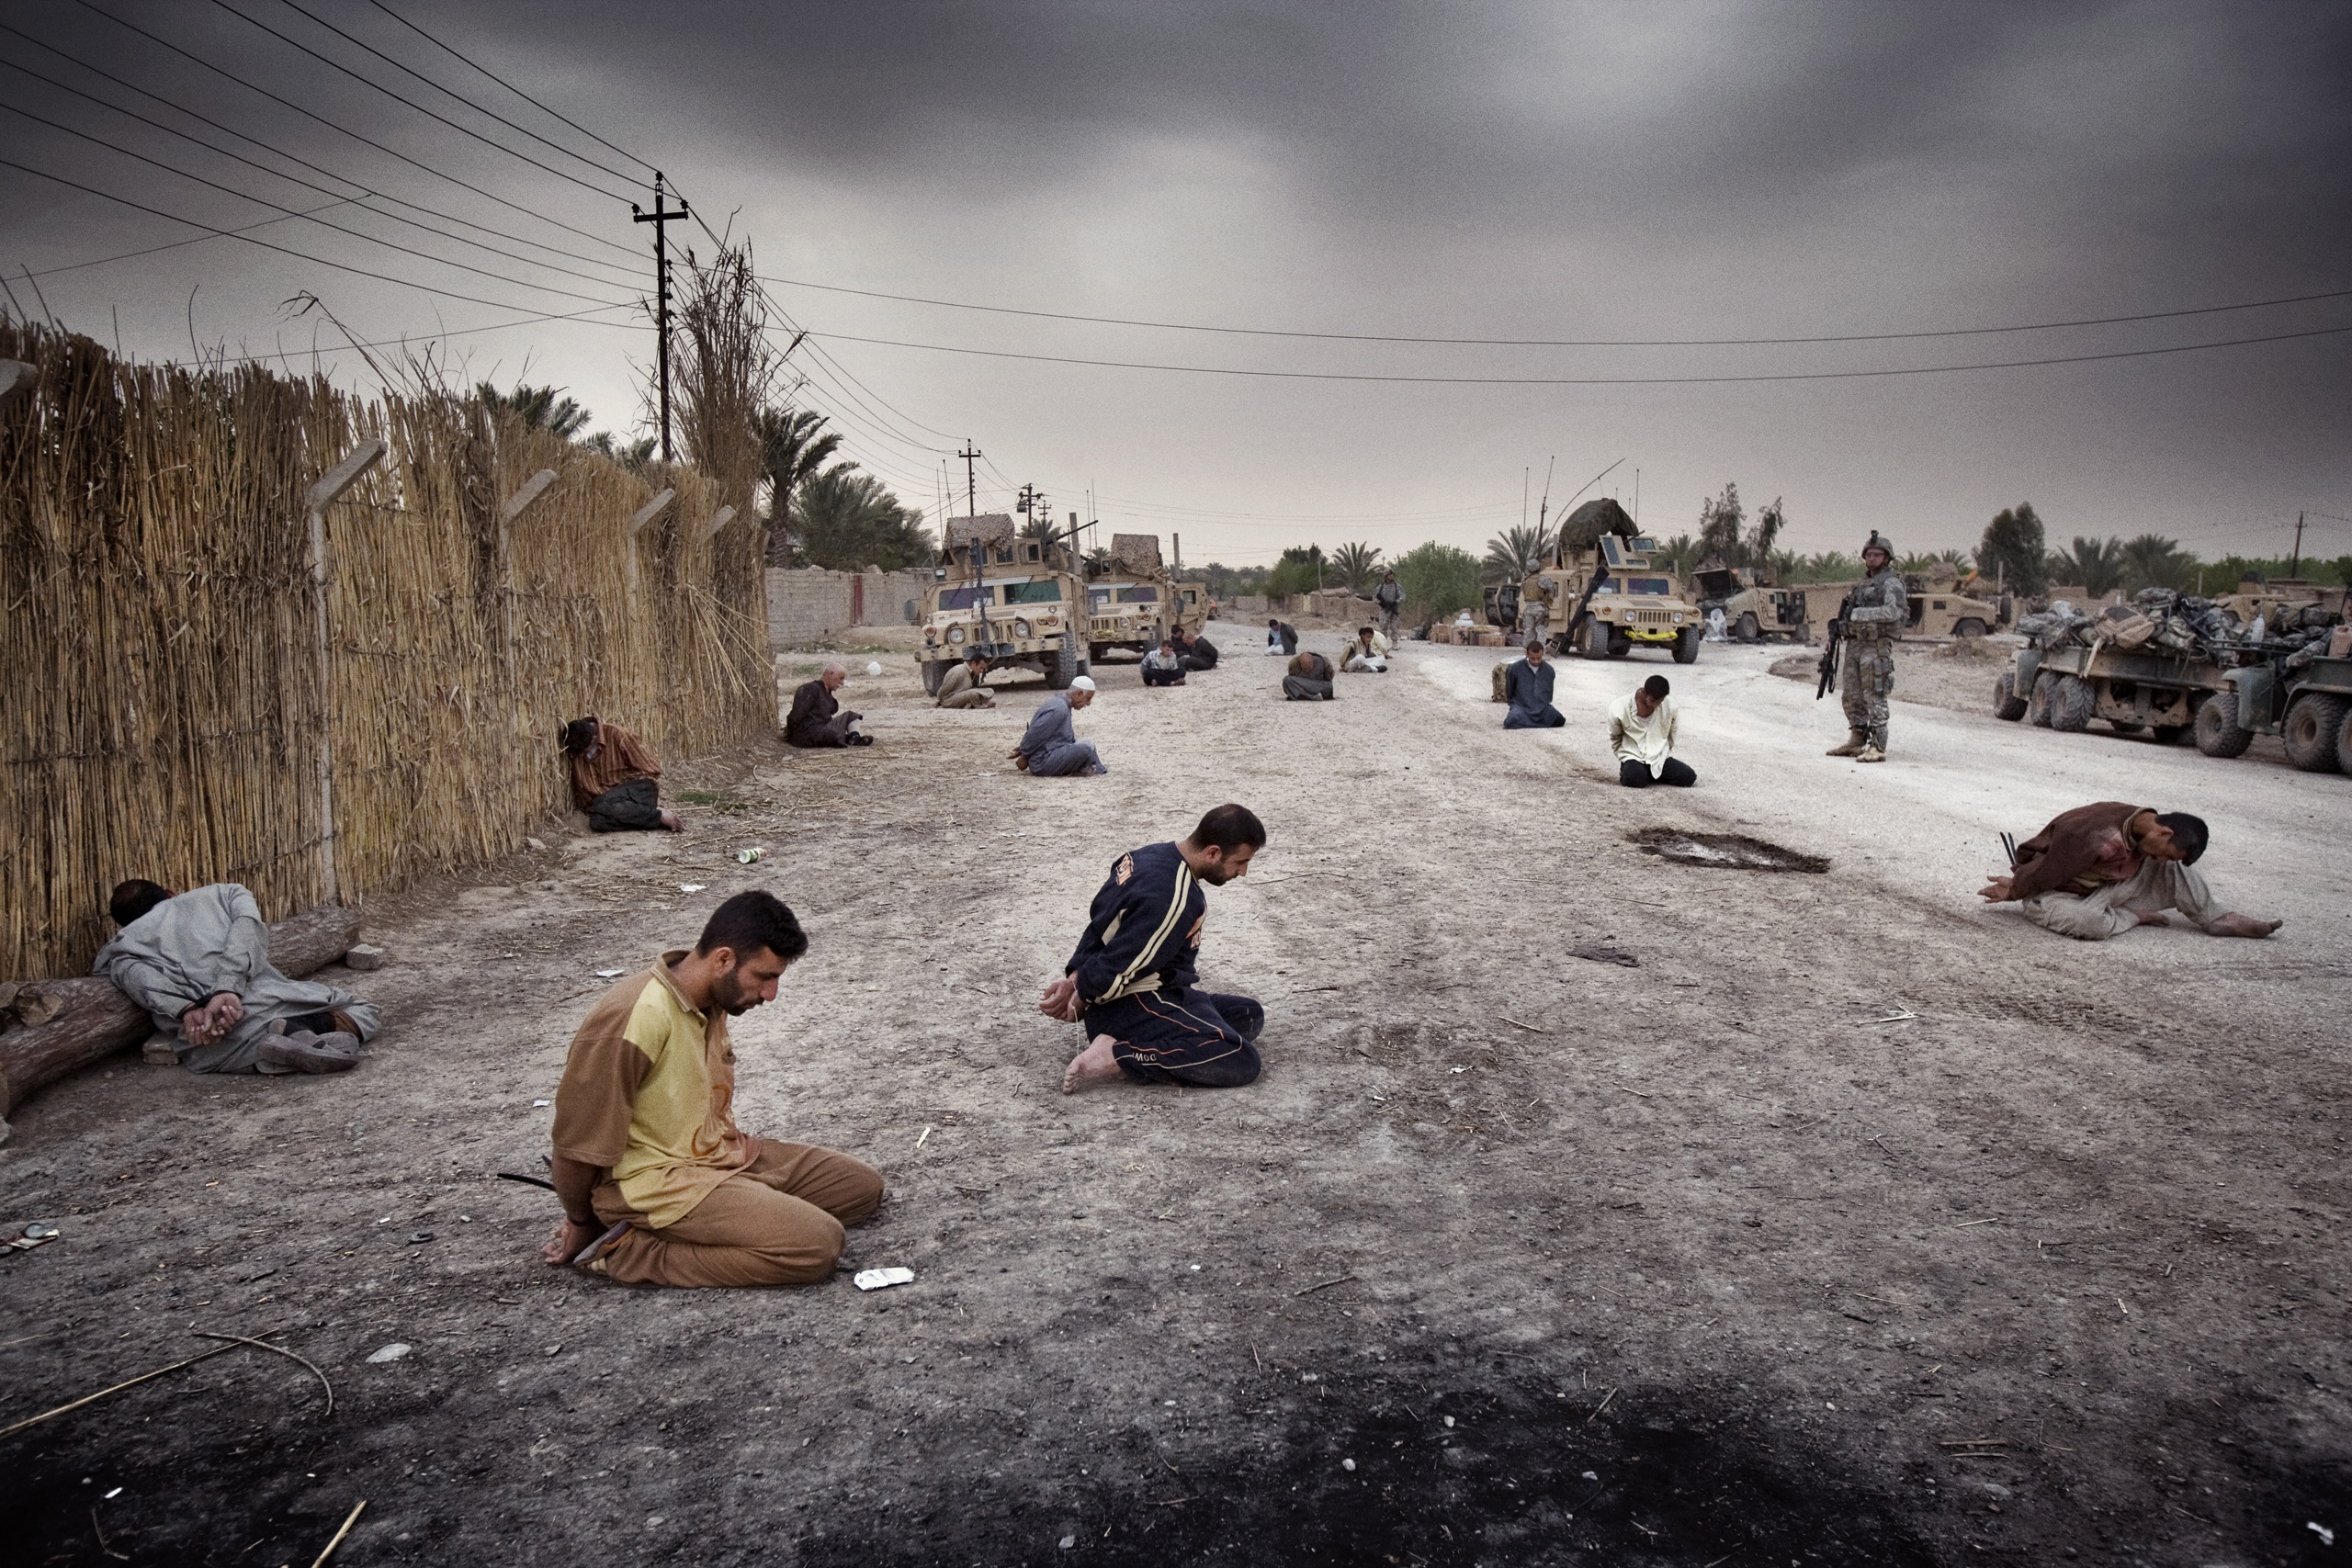 Men arrested by U.S. forces sit bound in the street after a roadside bomb attack in Qubah, Iraq, that left four Americans and one Iraqi boy dead, March 25, 2007.